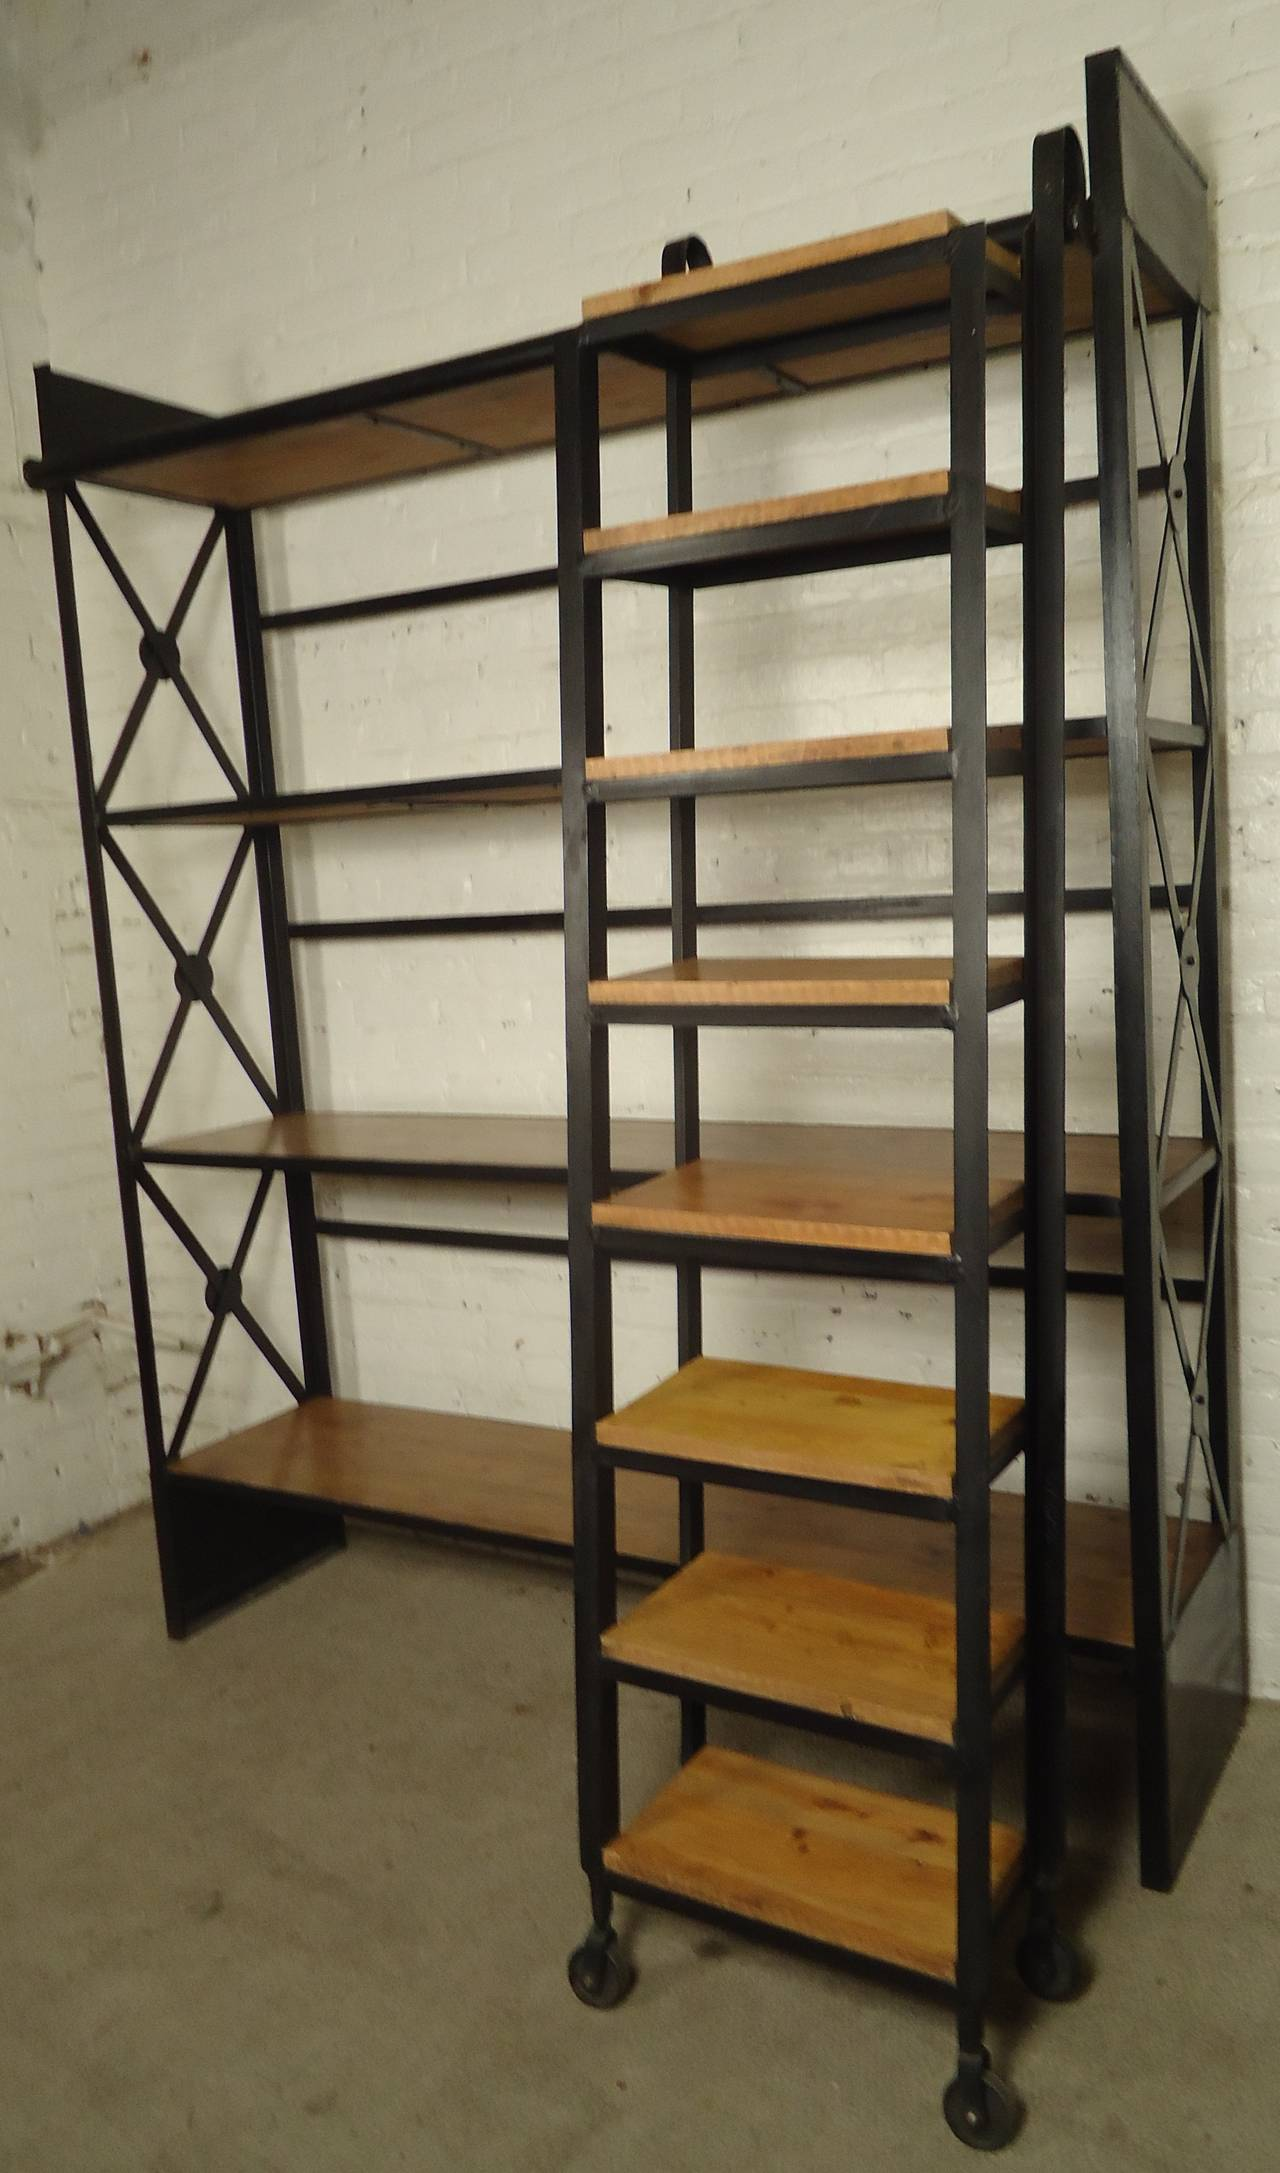 where to buy wood shelves 28 images where to buy. Black Bedroom Furniture Sets. Home Design Ideas